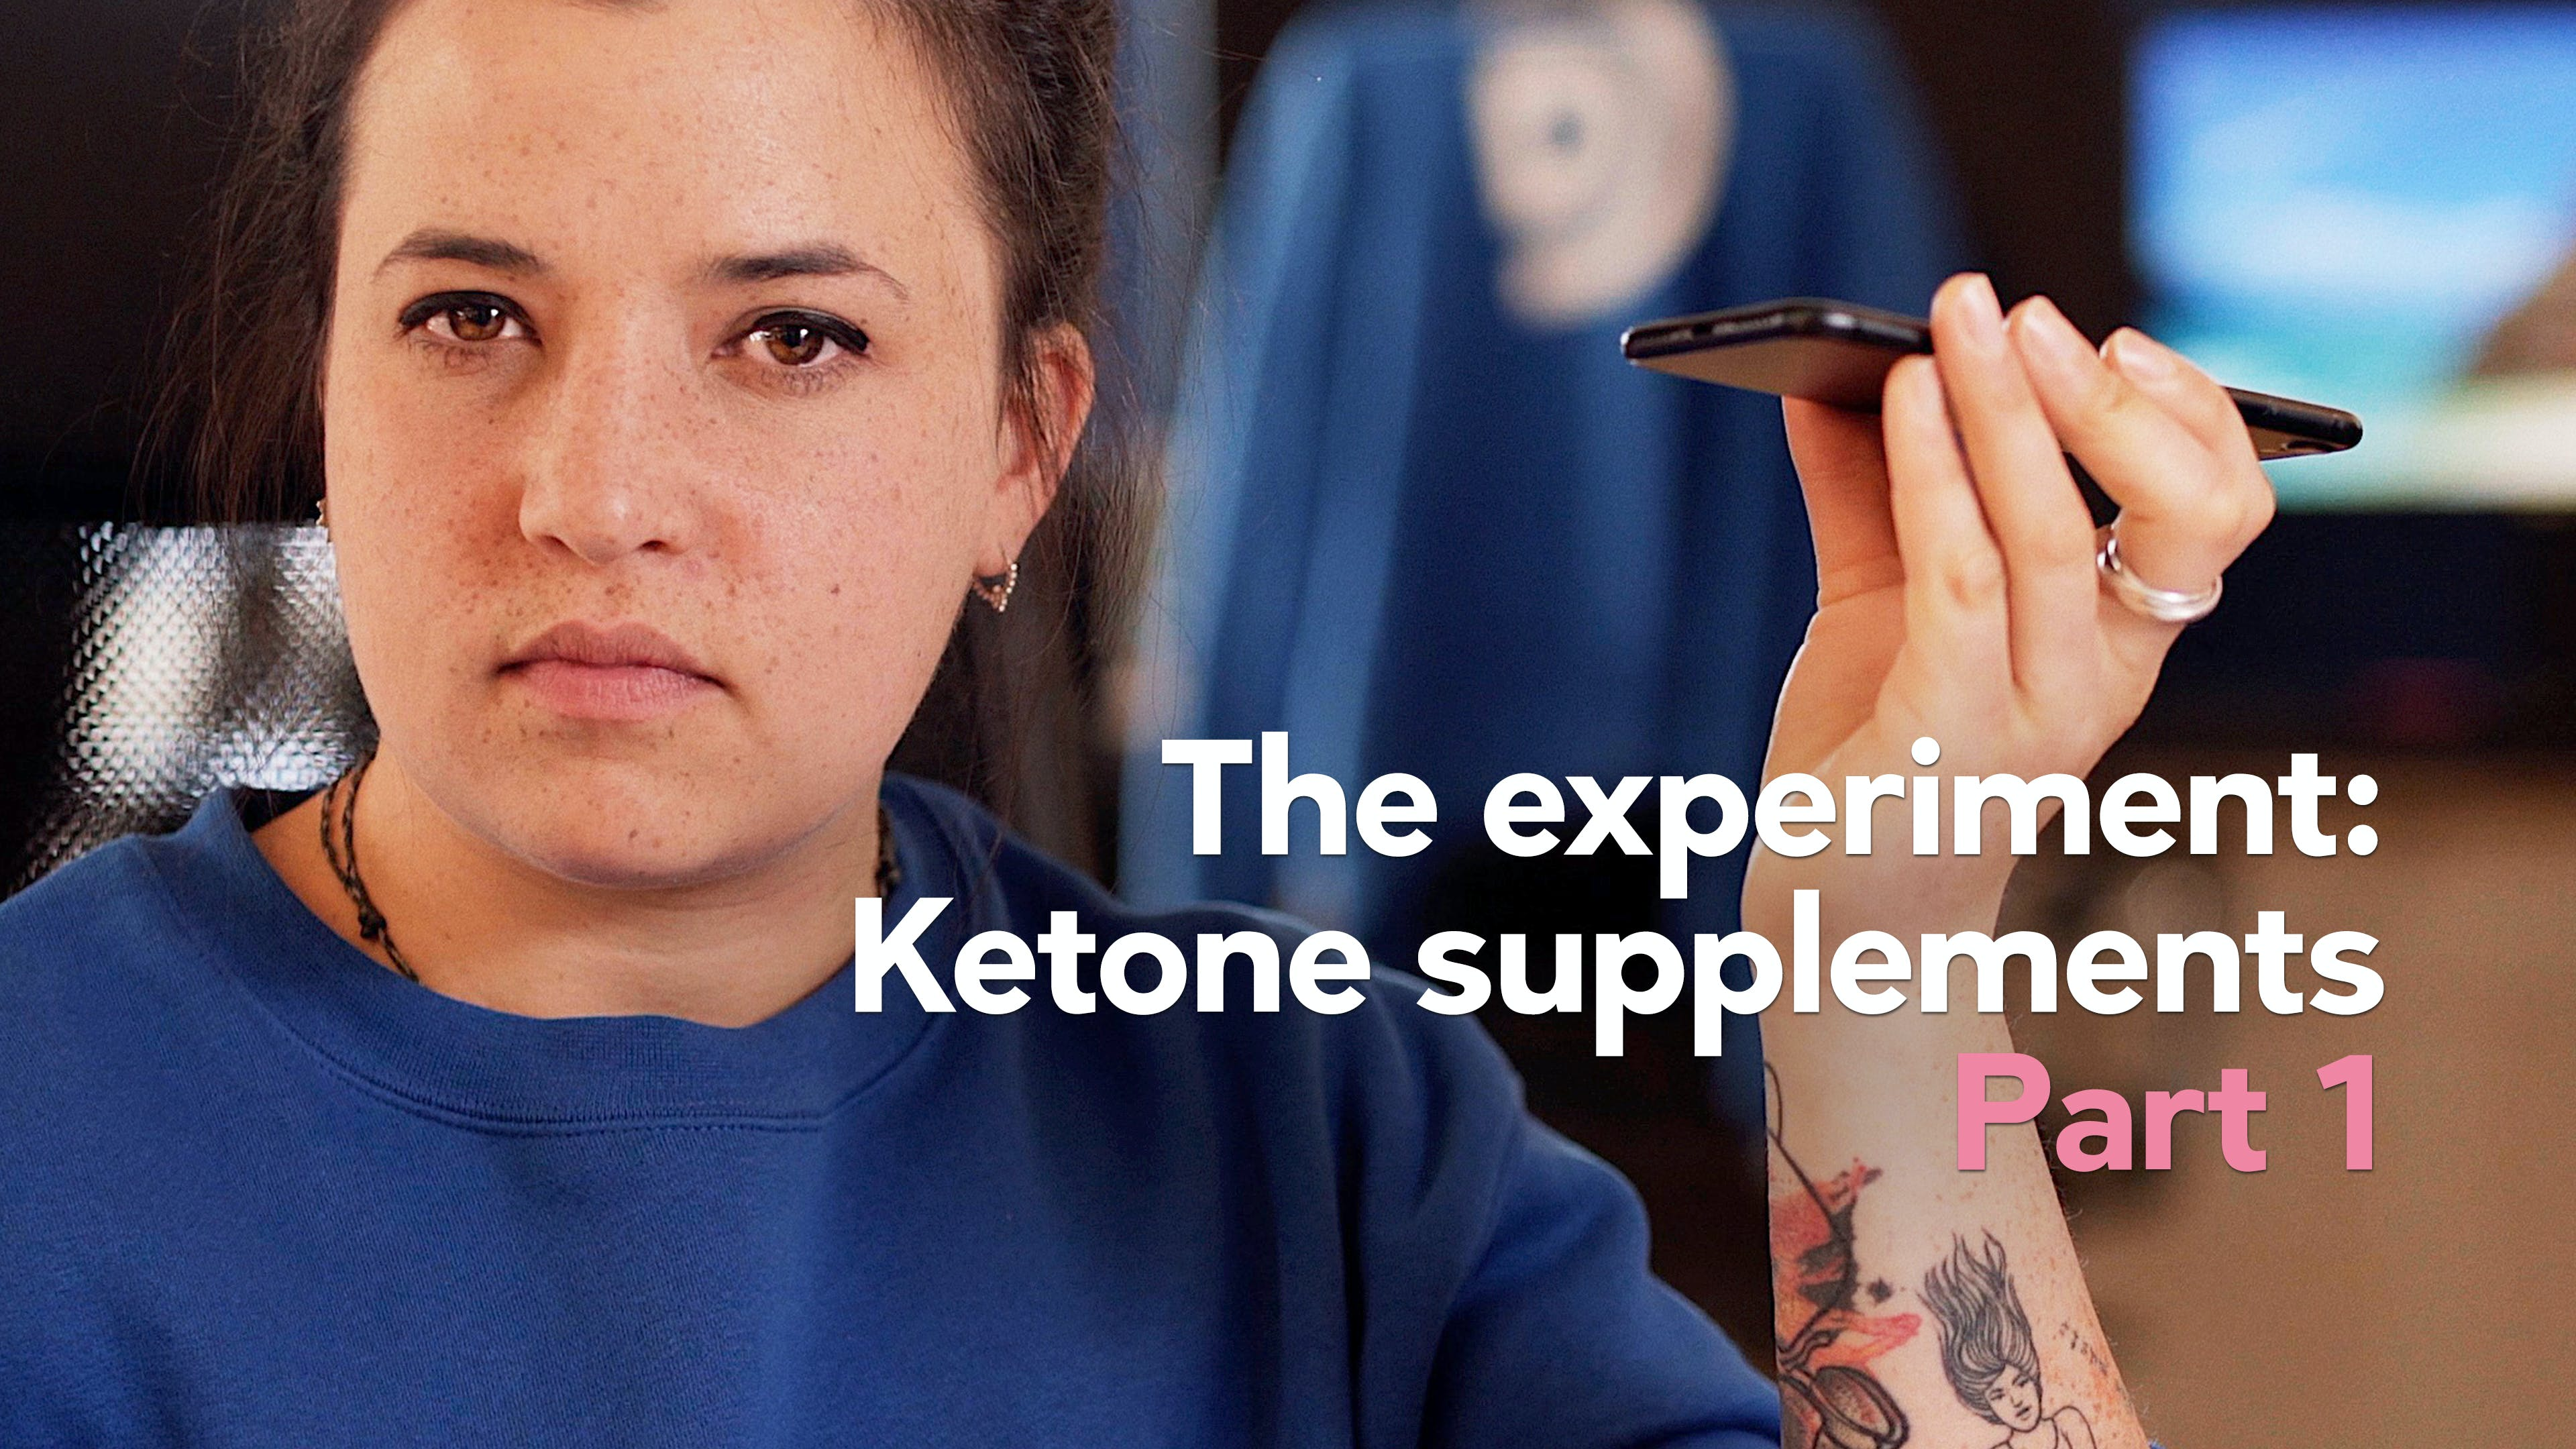 Do ketone supplements work? The big test, part 1